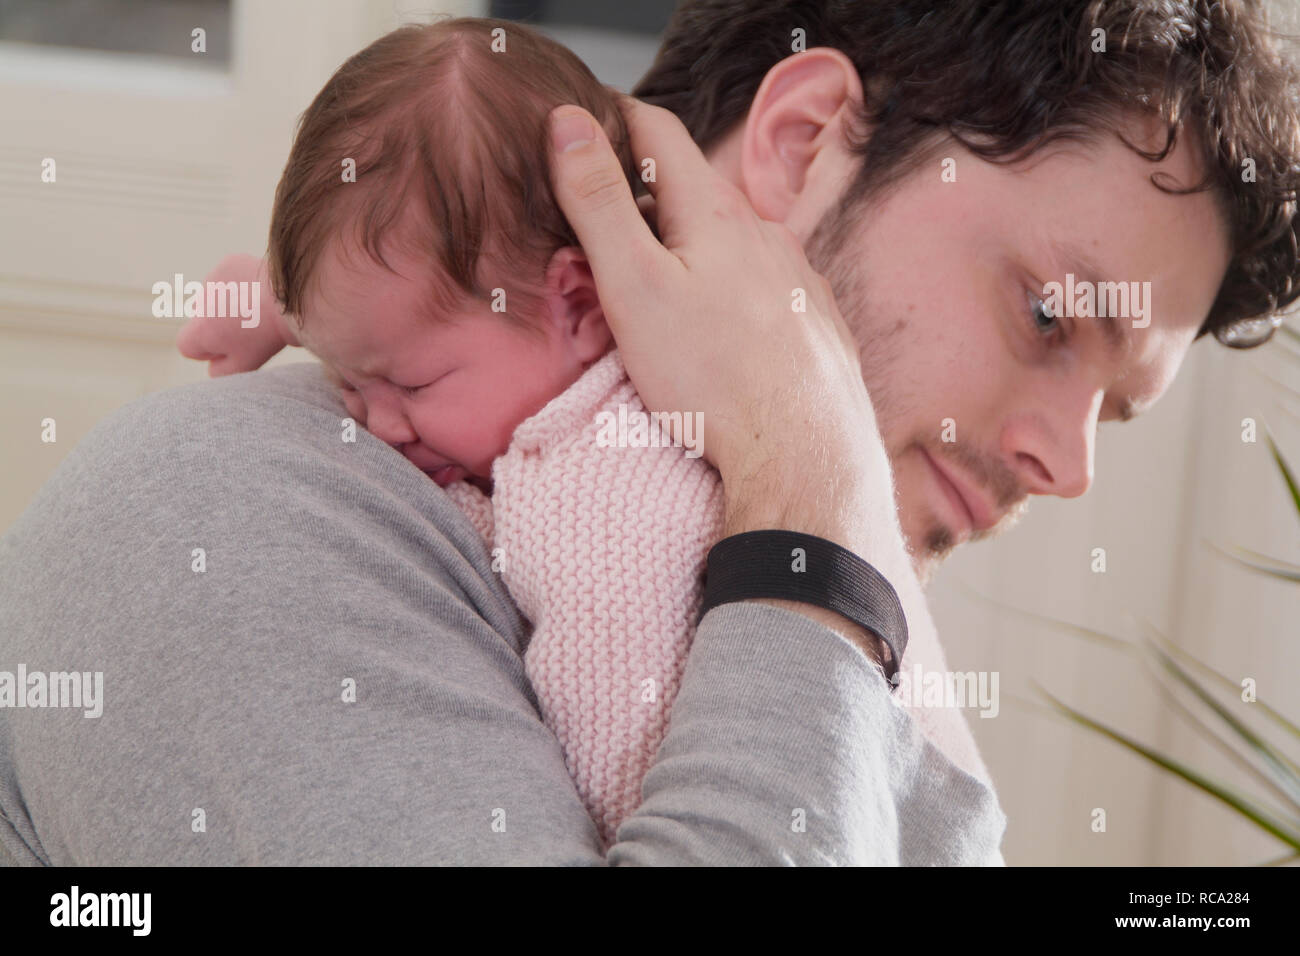 Junger hält seine neugeborene Tochter im Arm, das Kind ist 12 Tage alt   young father holding his new born baby in his arms - the baby ist 12 days old Stock Photo